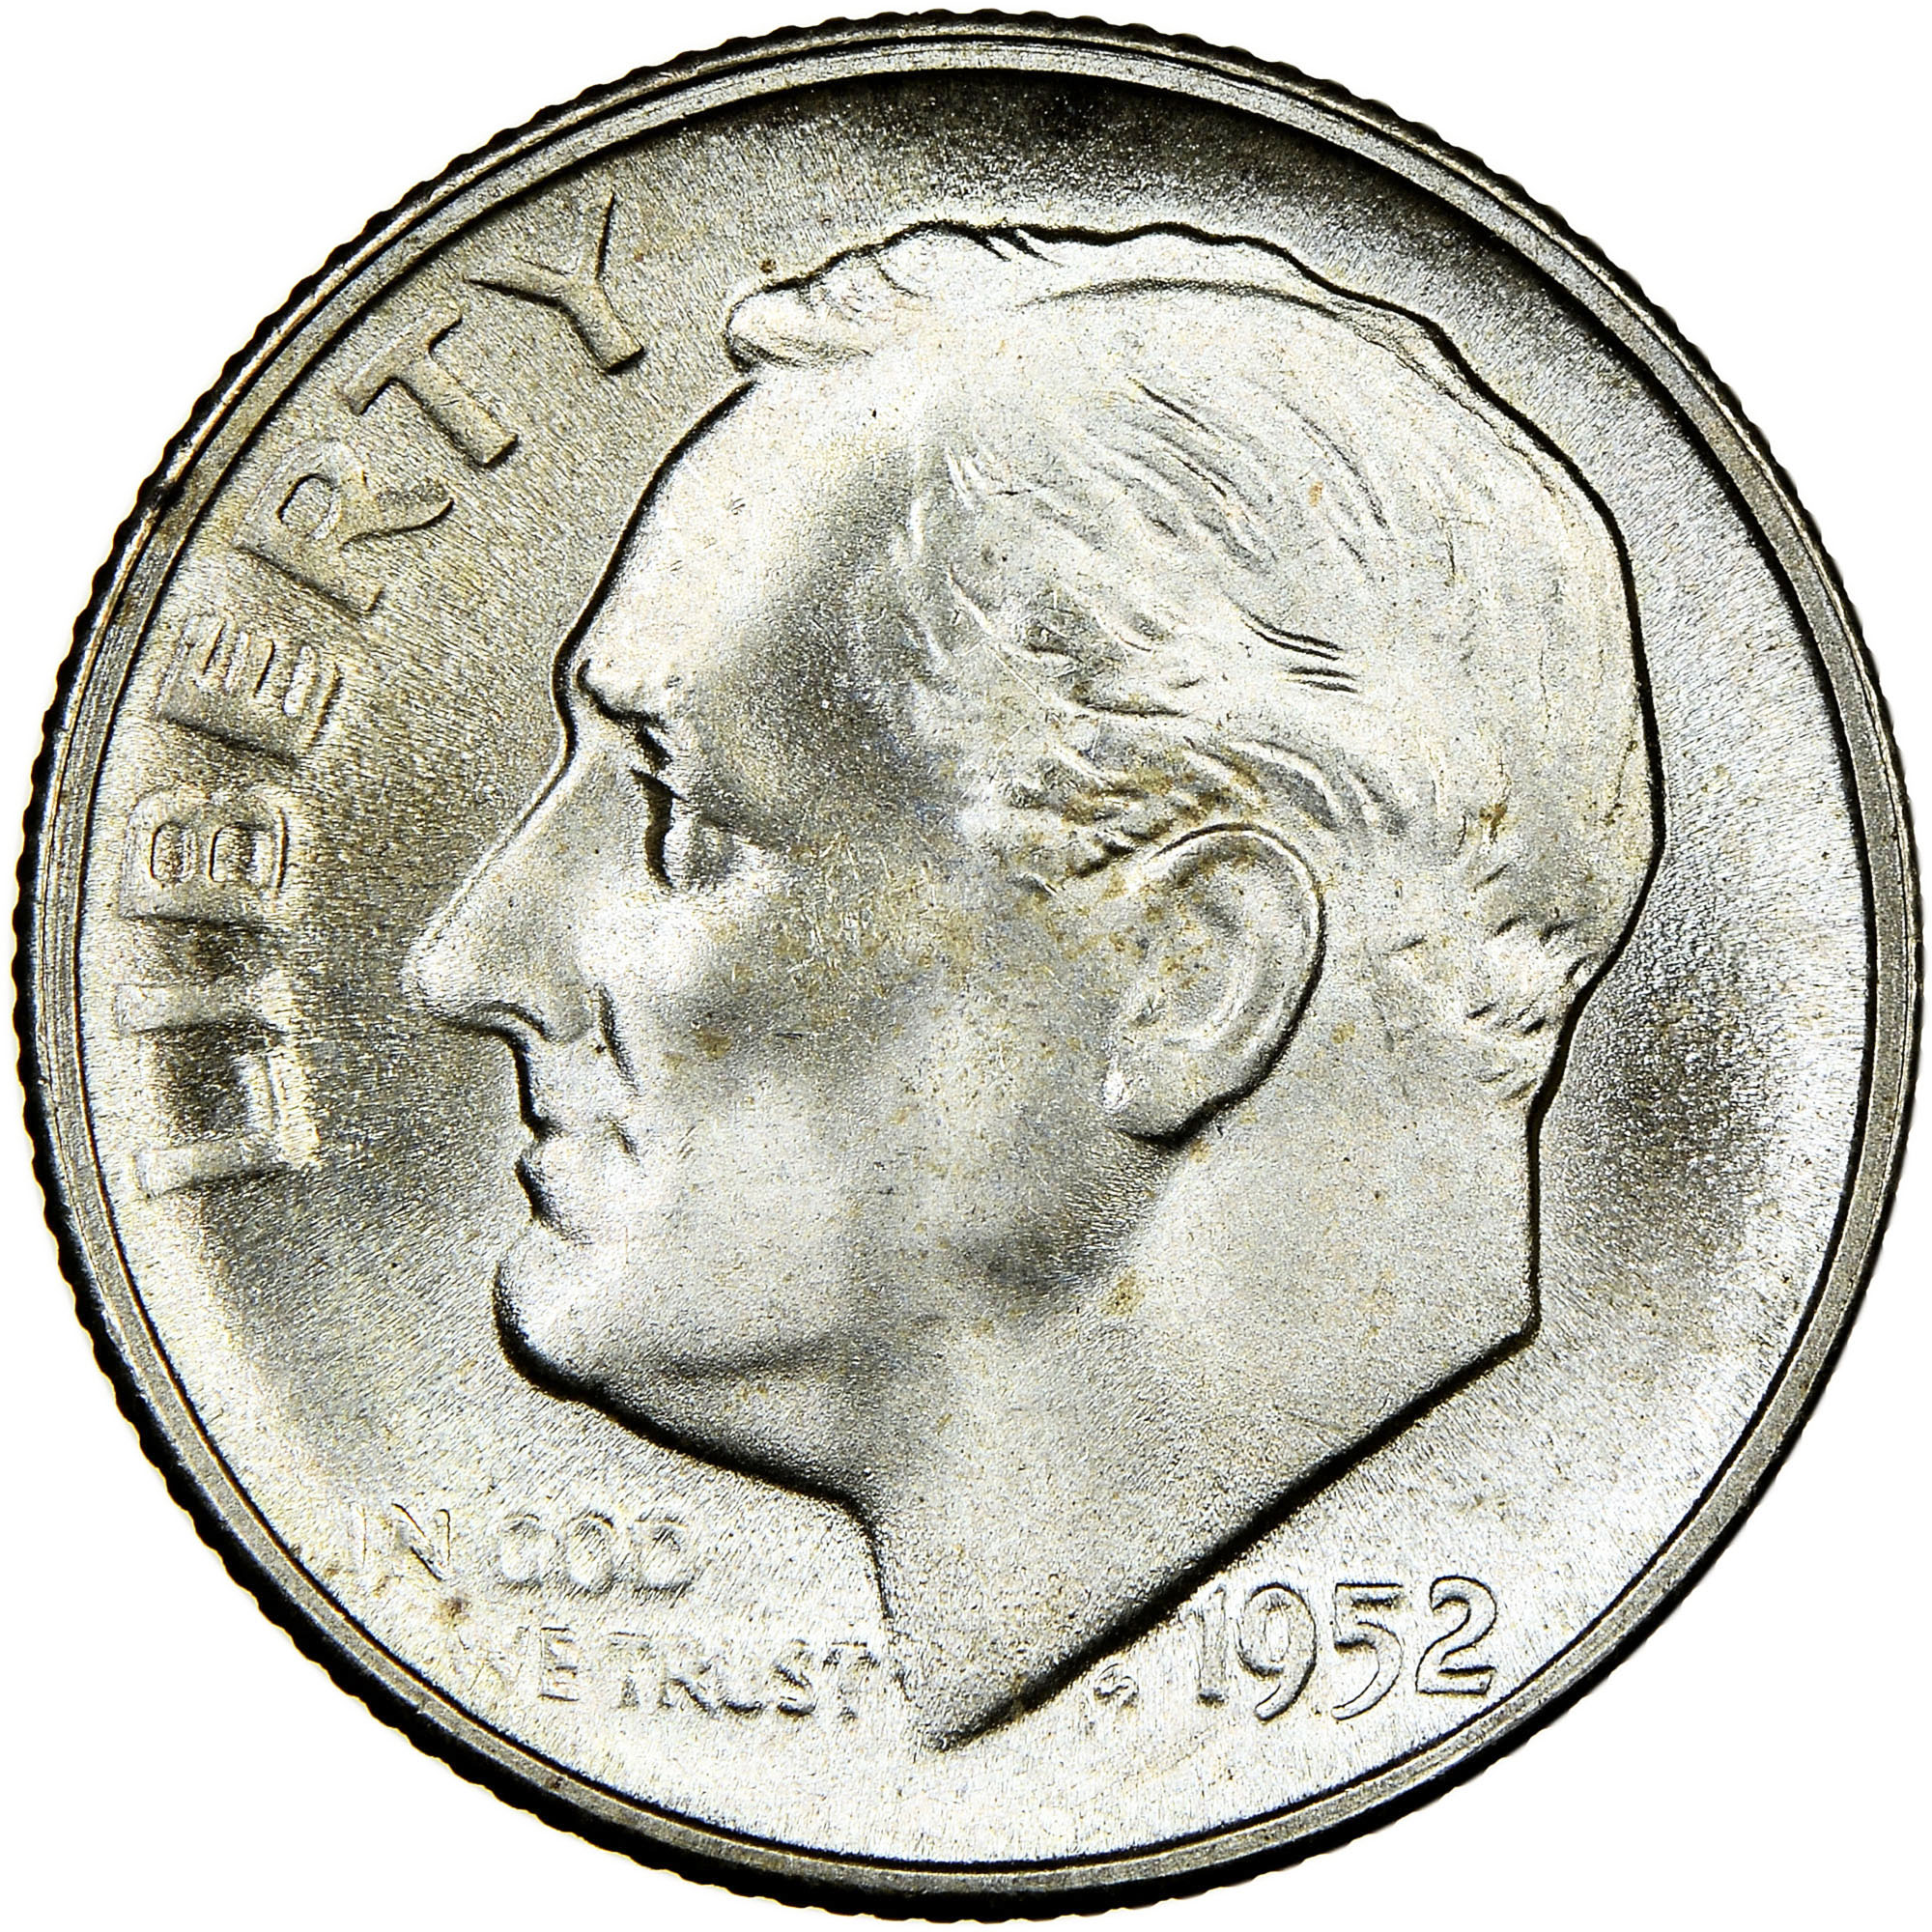 US Roosevelt Dimes 1952 1952-D 1952-S Price per Each Coin issued year 1952